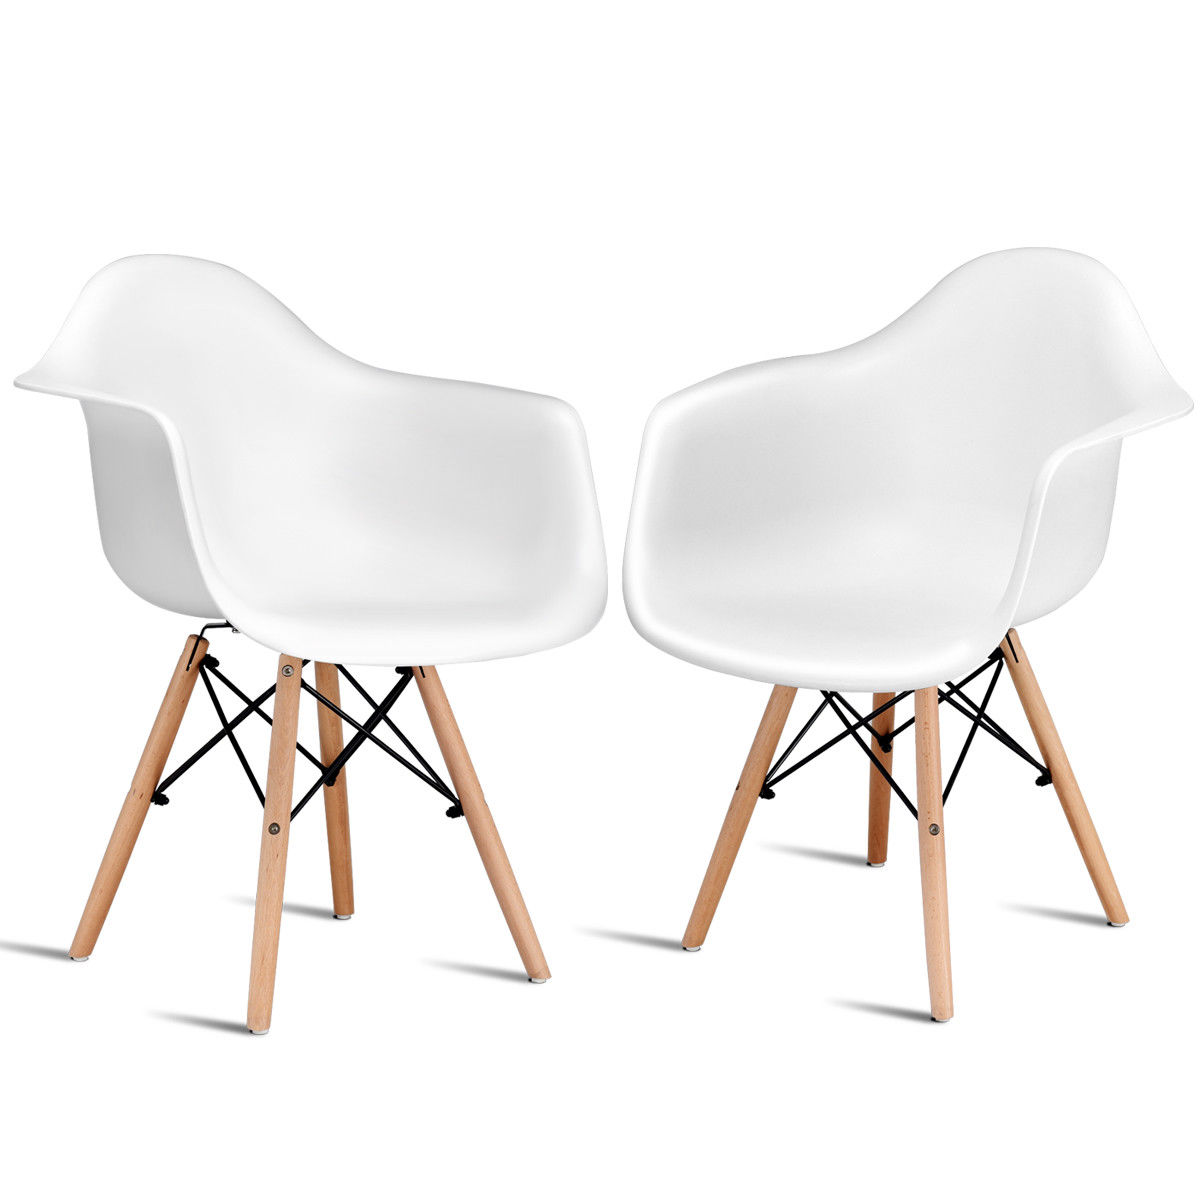 Costway Set of 2 Mid Century Modern Molded Style Dining Armchair Wood Legs by Costway